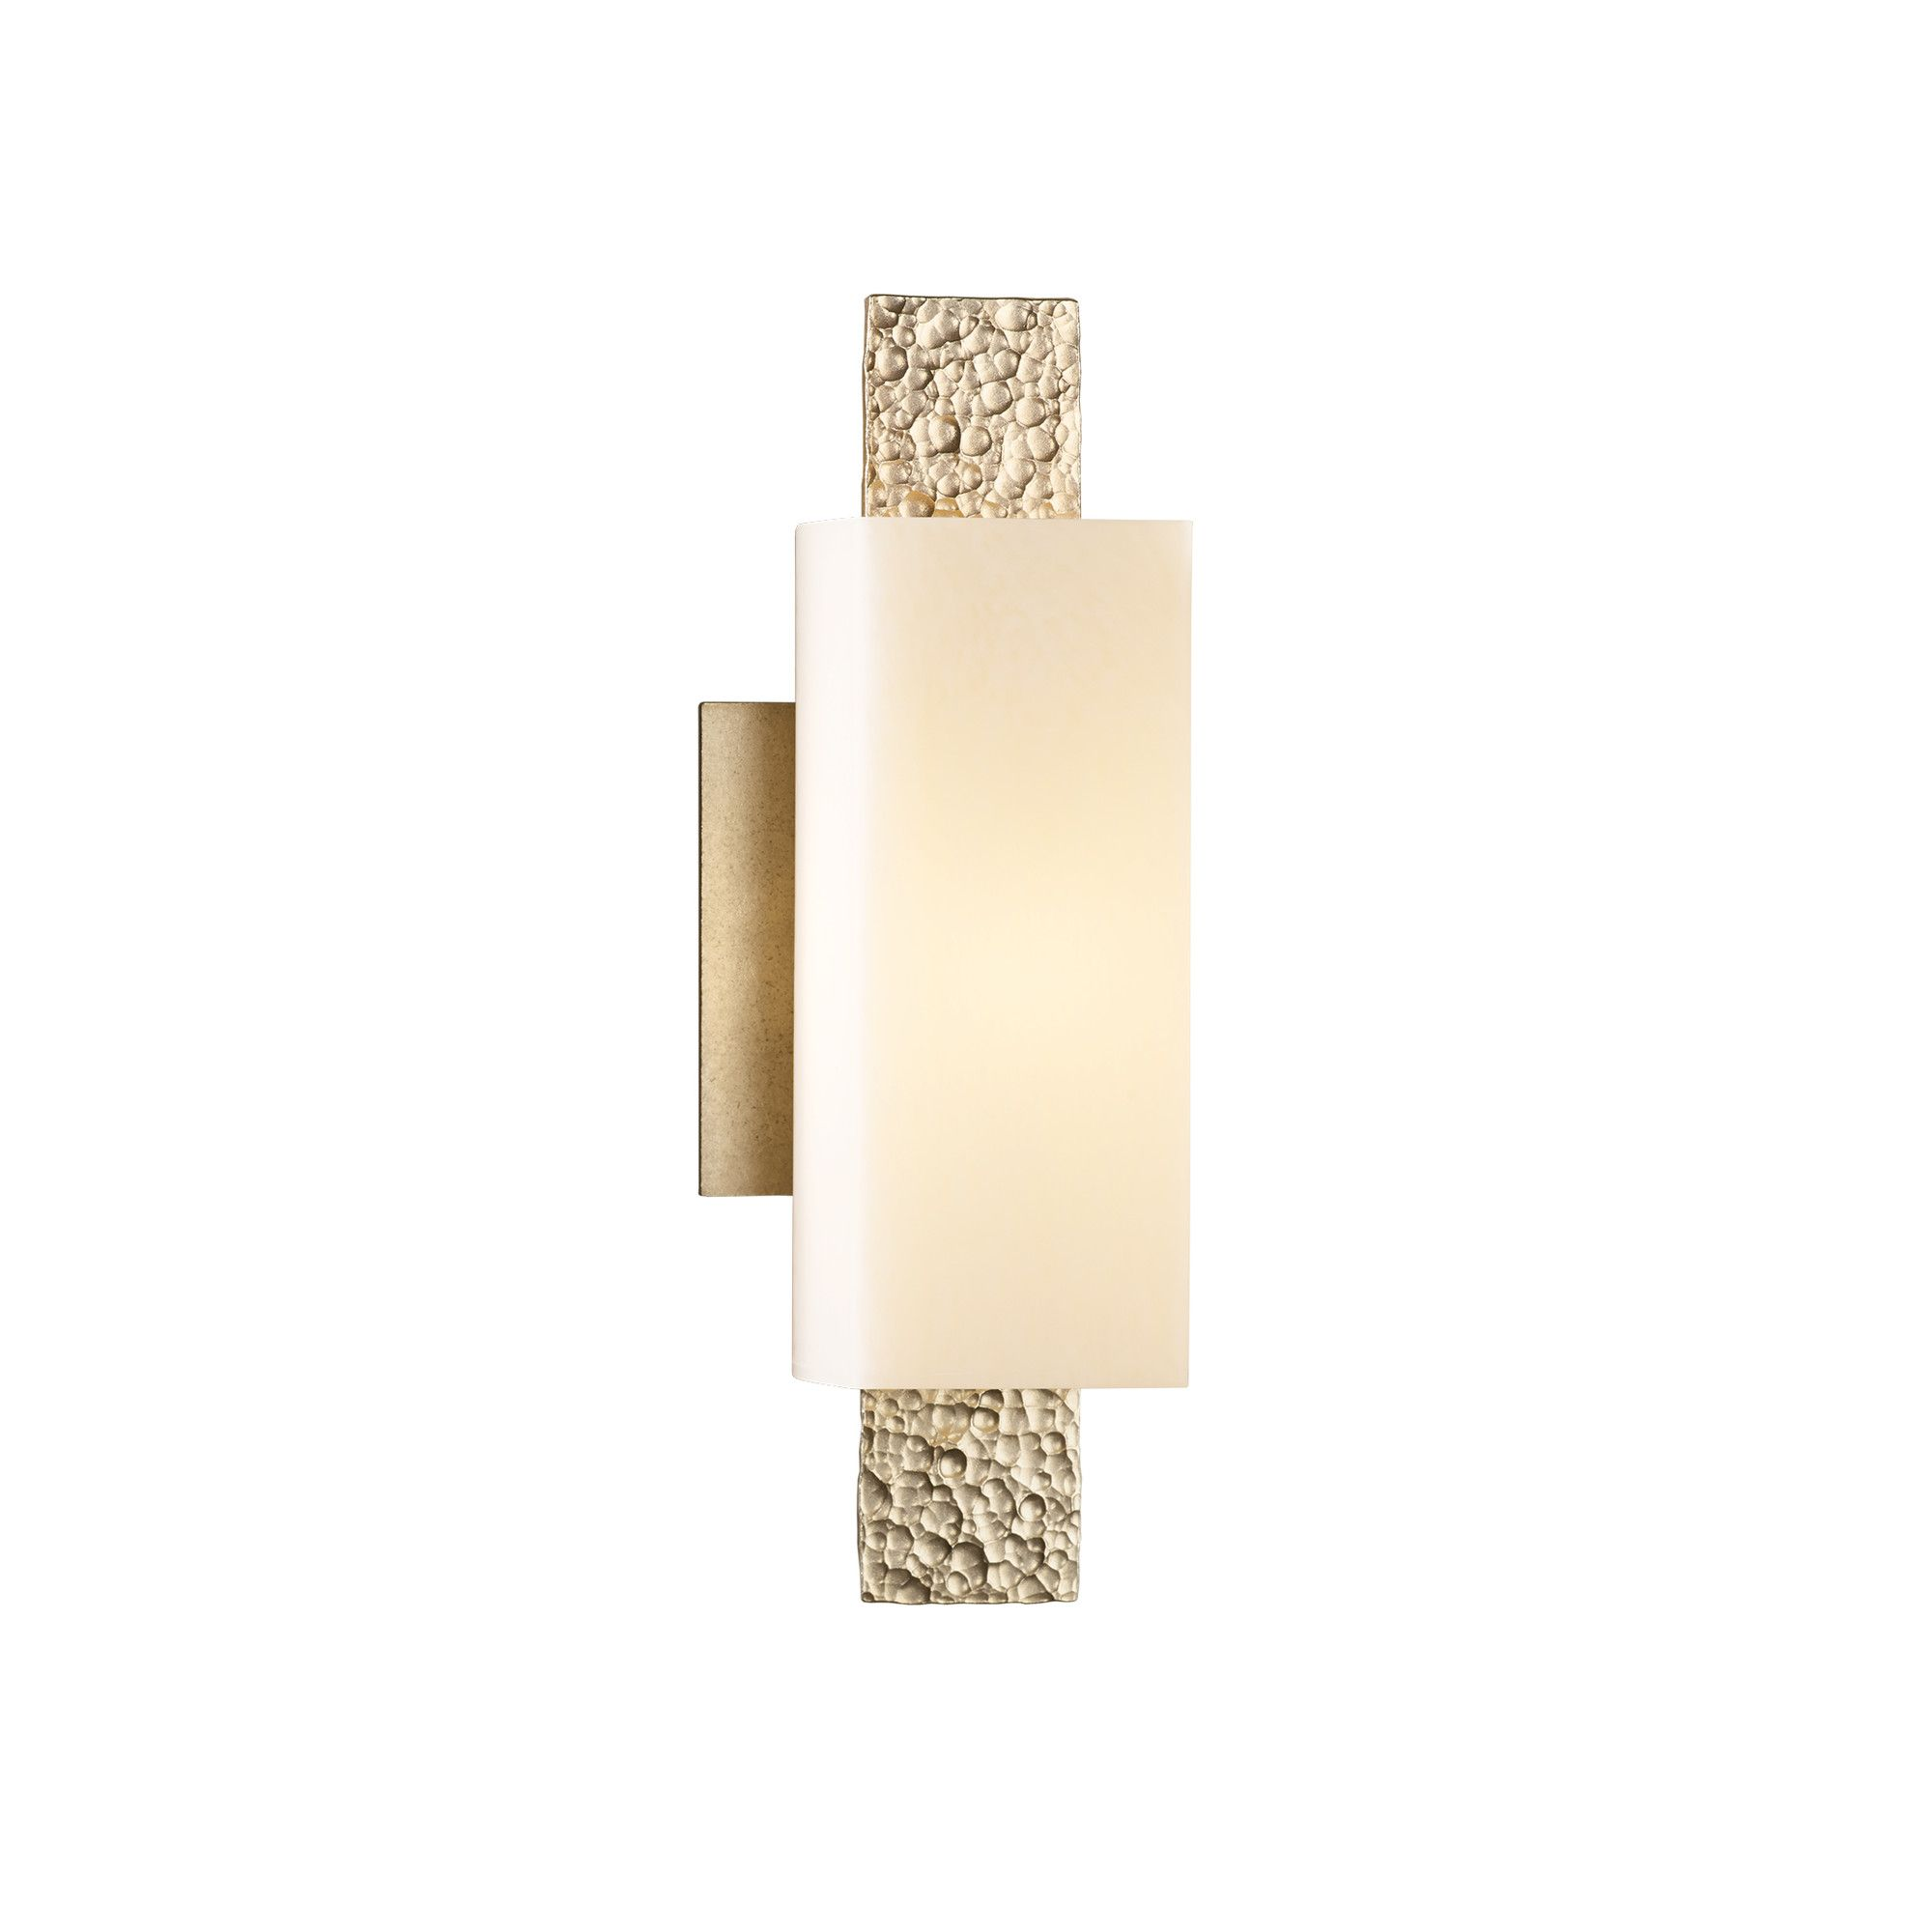 Oceanus 1 Light Flush Mount In 2021 Gold Wall Sconce Sconces Wall Sconces